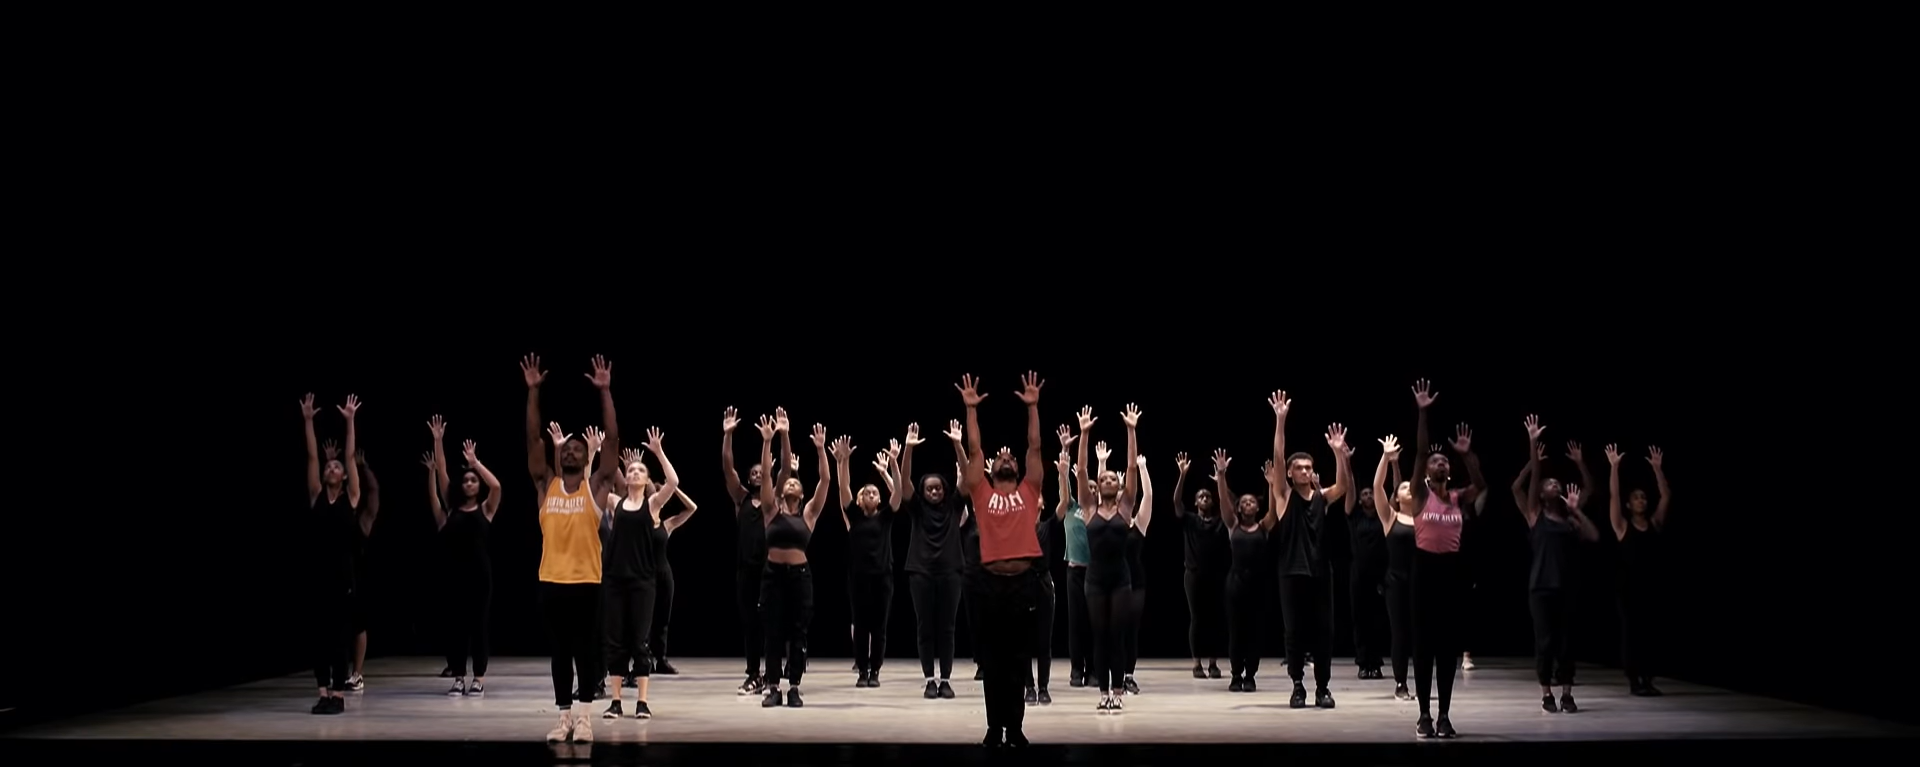 Ailey Masterclass_Dancers on a stage with their hands in the air